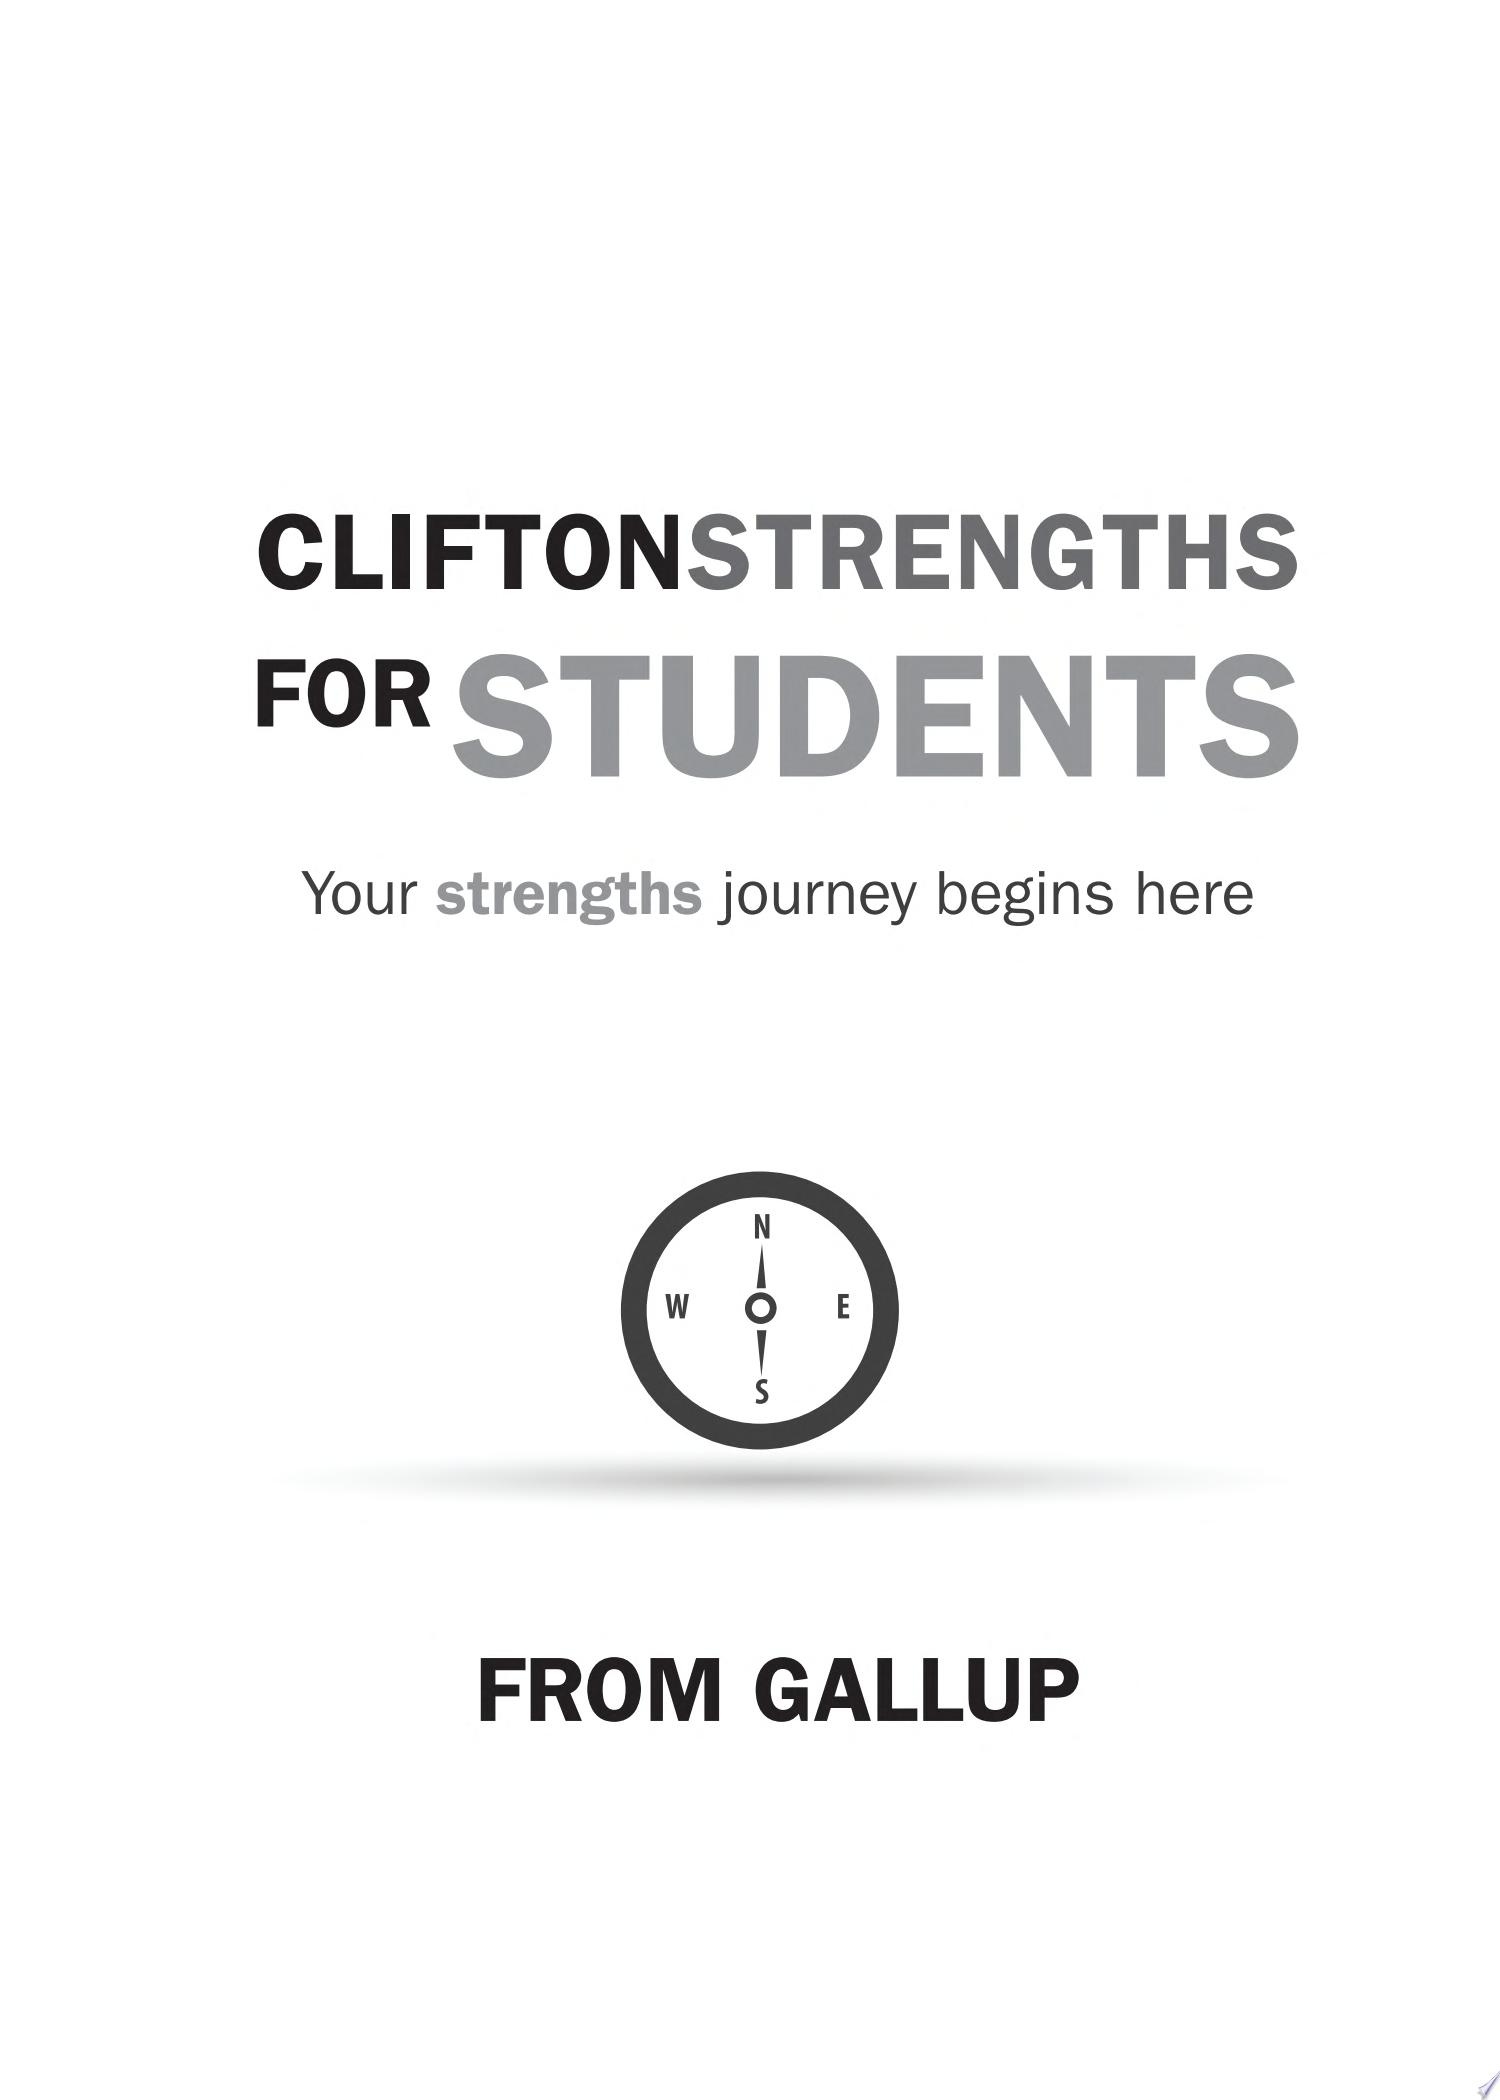 CliftonStrengths for Students